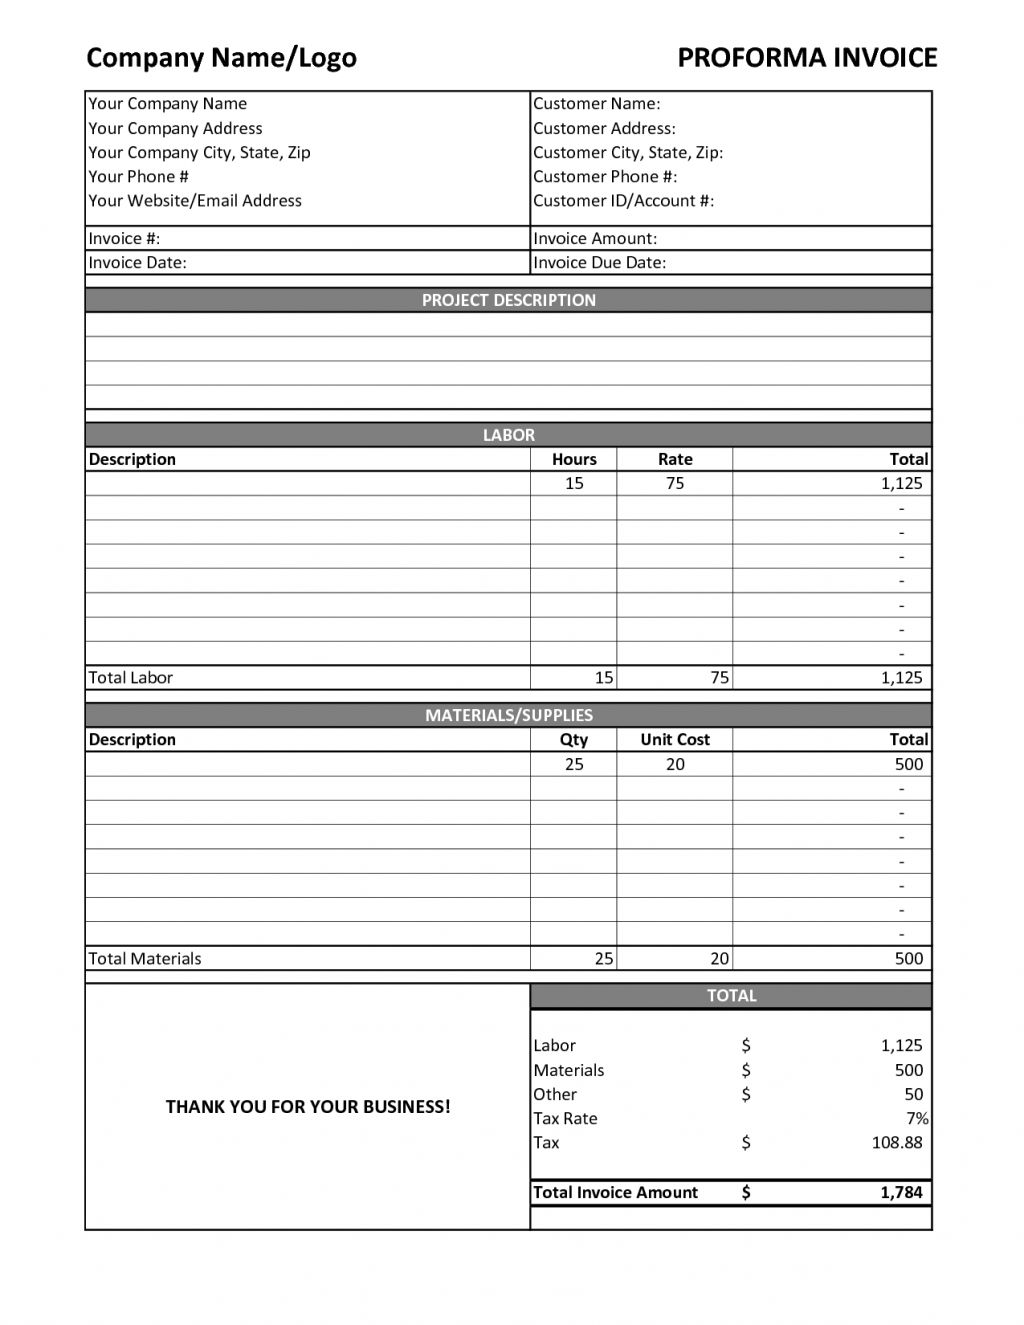 Labor Invoice Template Excel Labor Receipt Invoice Samples Labour Bill  Format In Excel Simple Invoice For